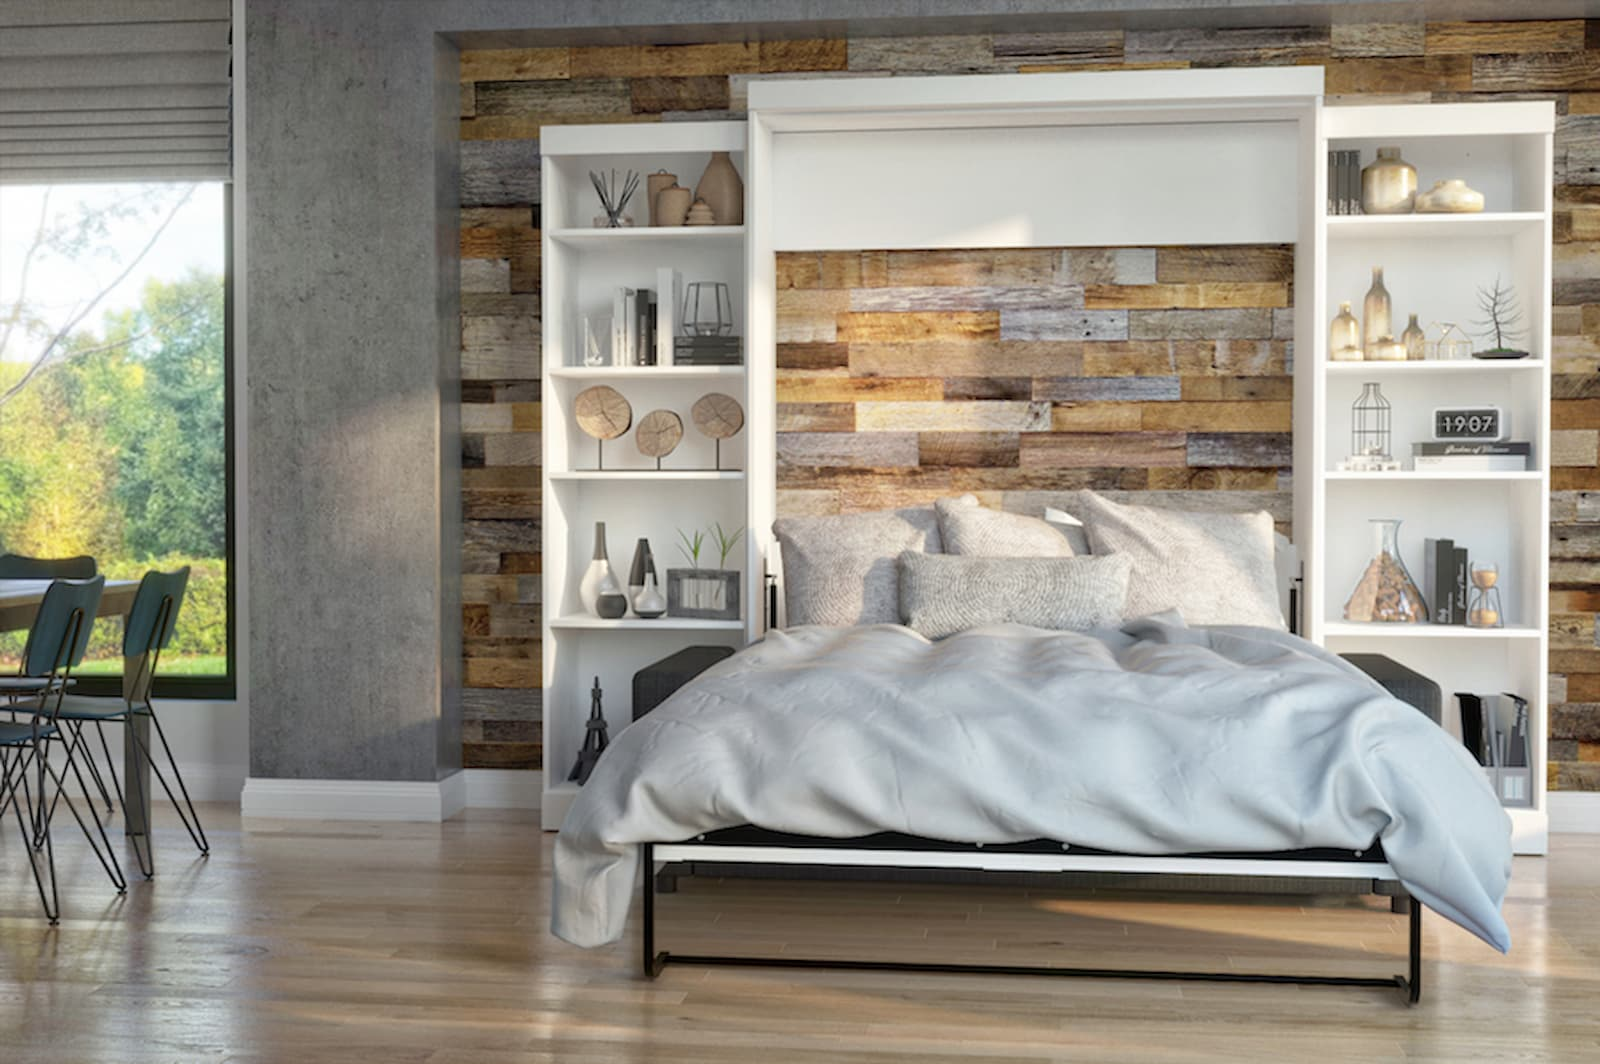 3 Multipurpose Pieces You Need in Your Home – Murphy Bed with Couch, Lift-Top Coffee Table, and More